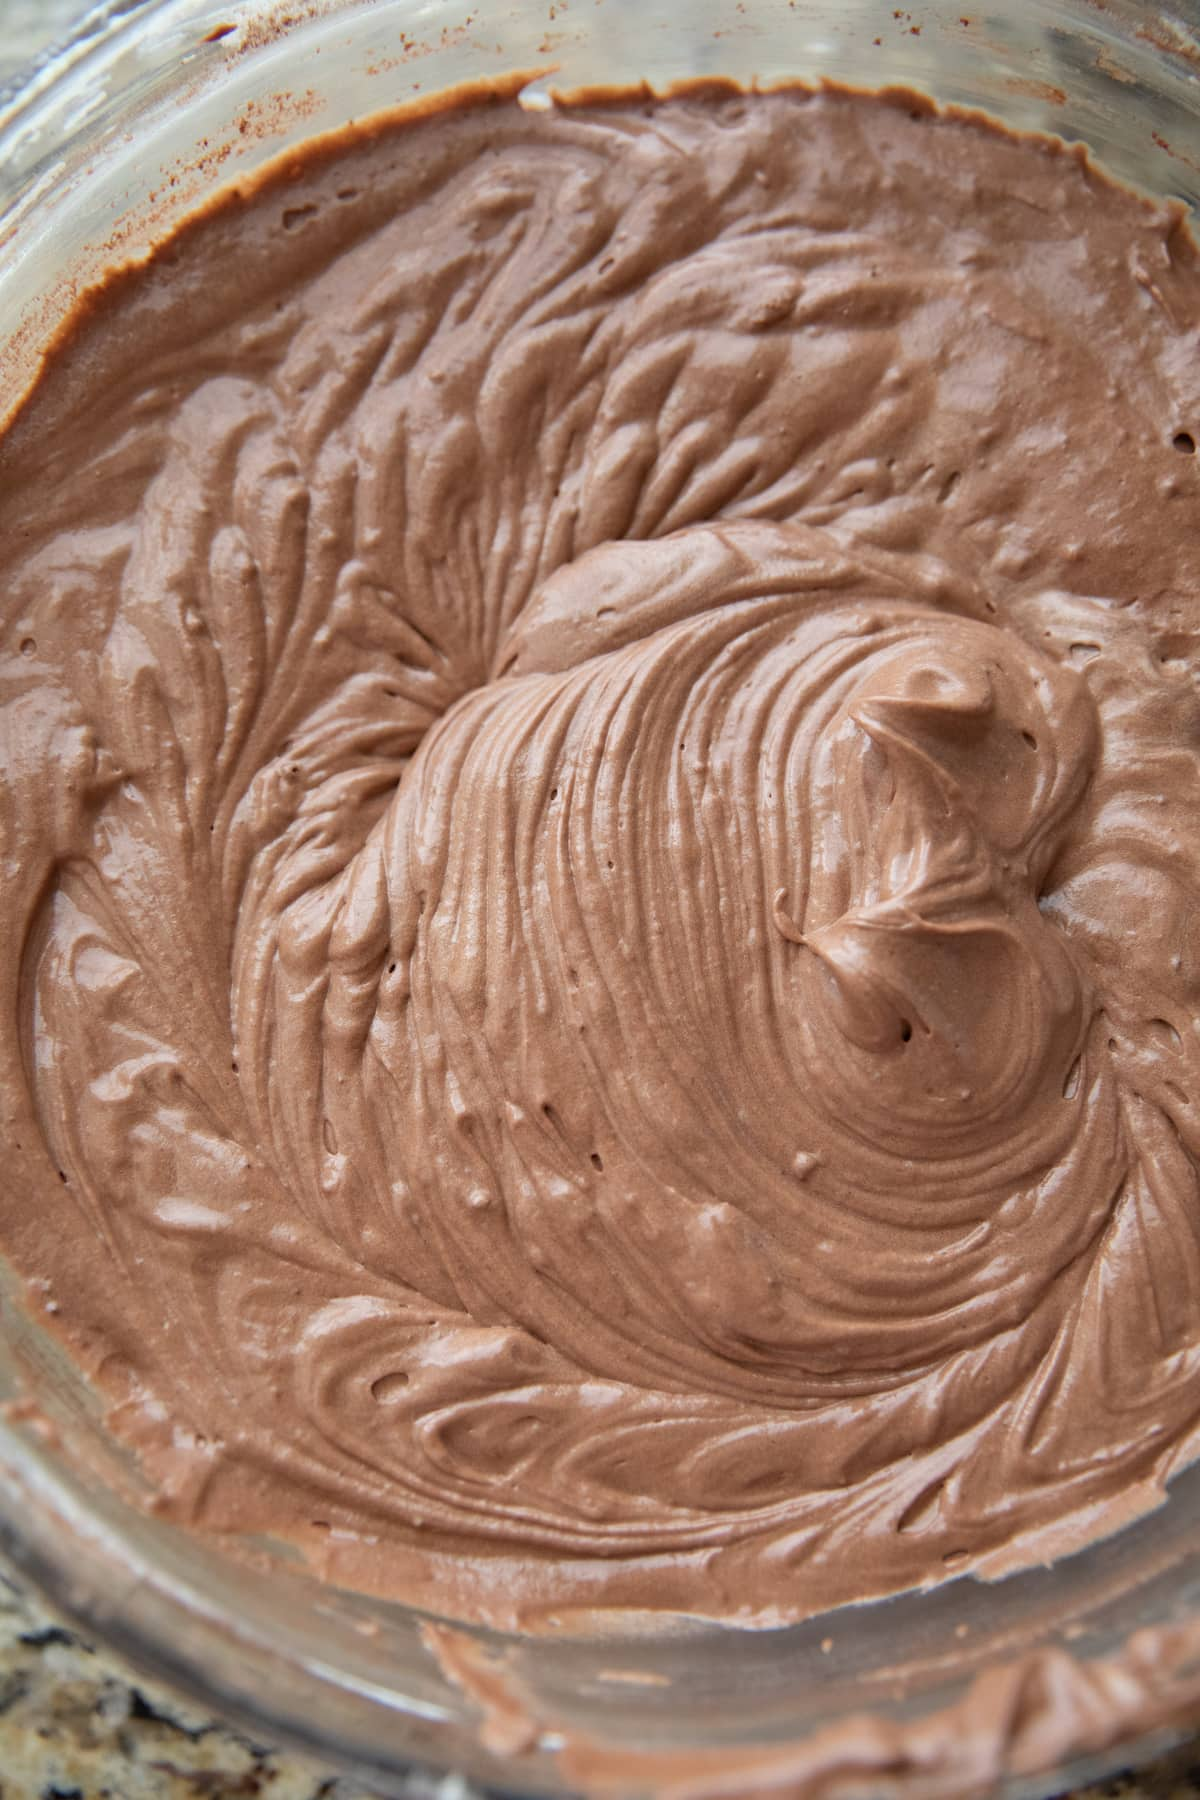 chocolate cake batter in glass mixing bowl